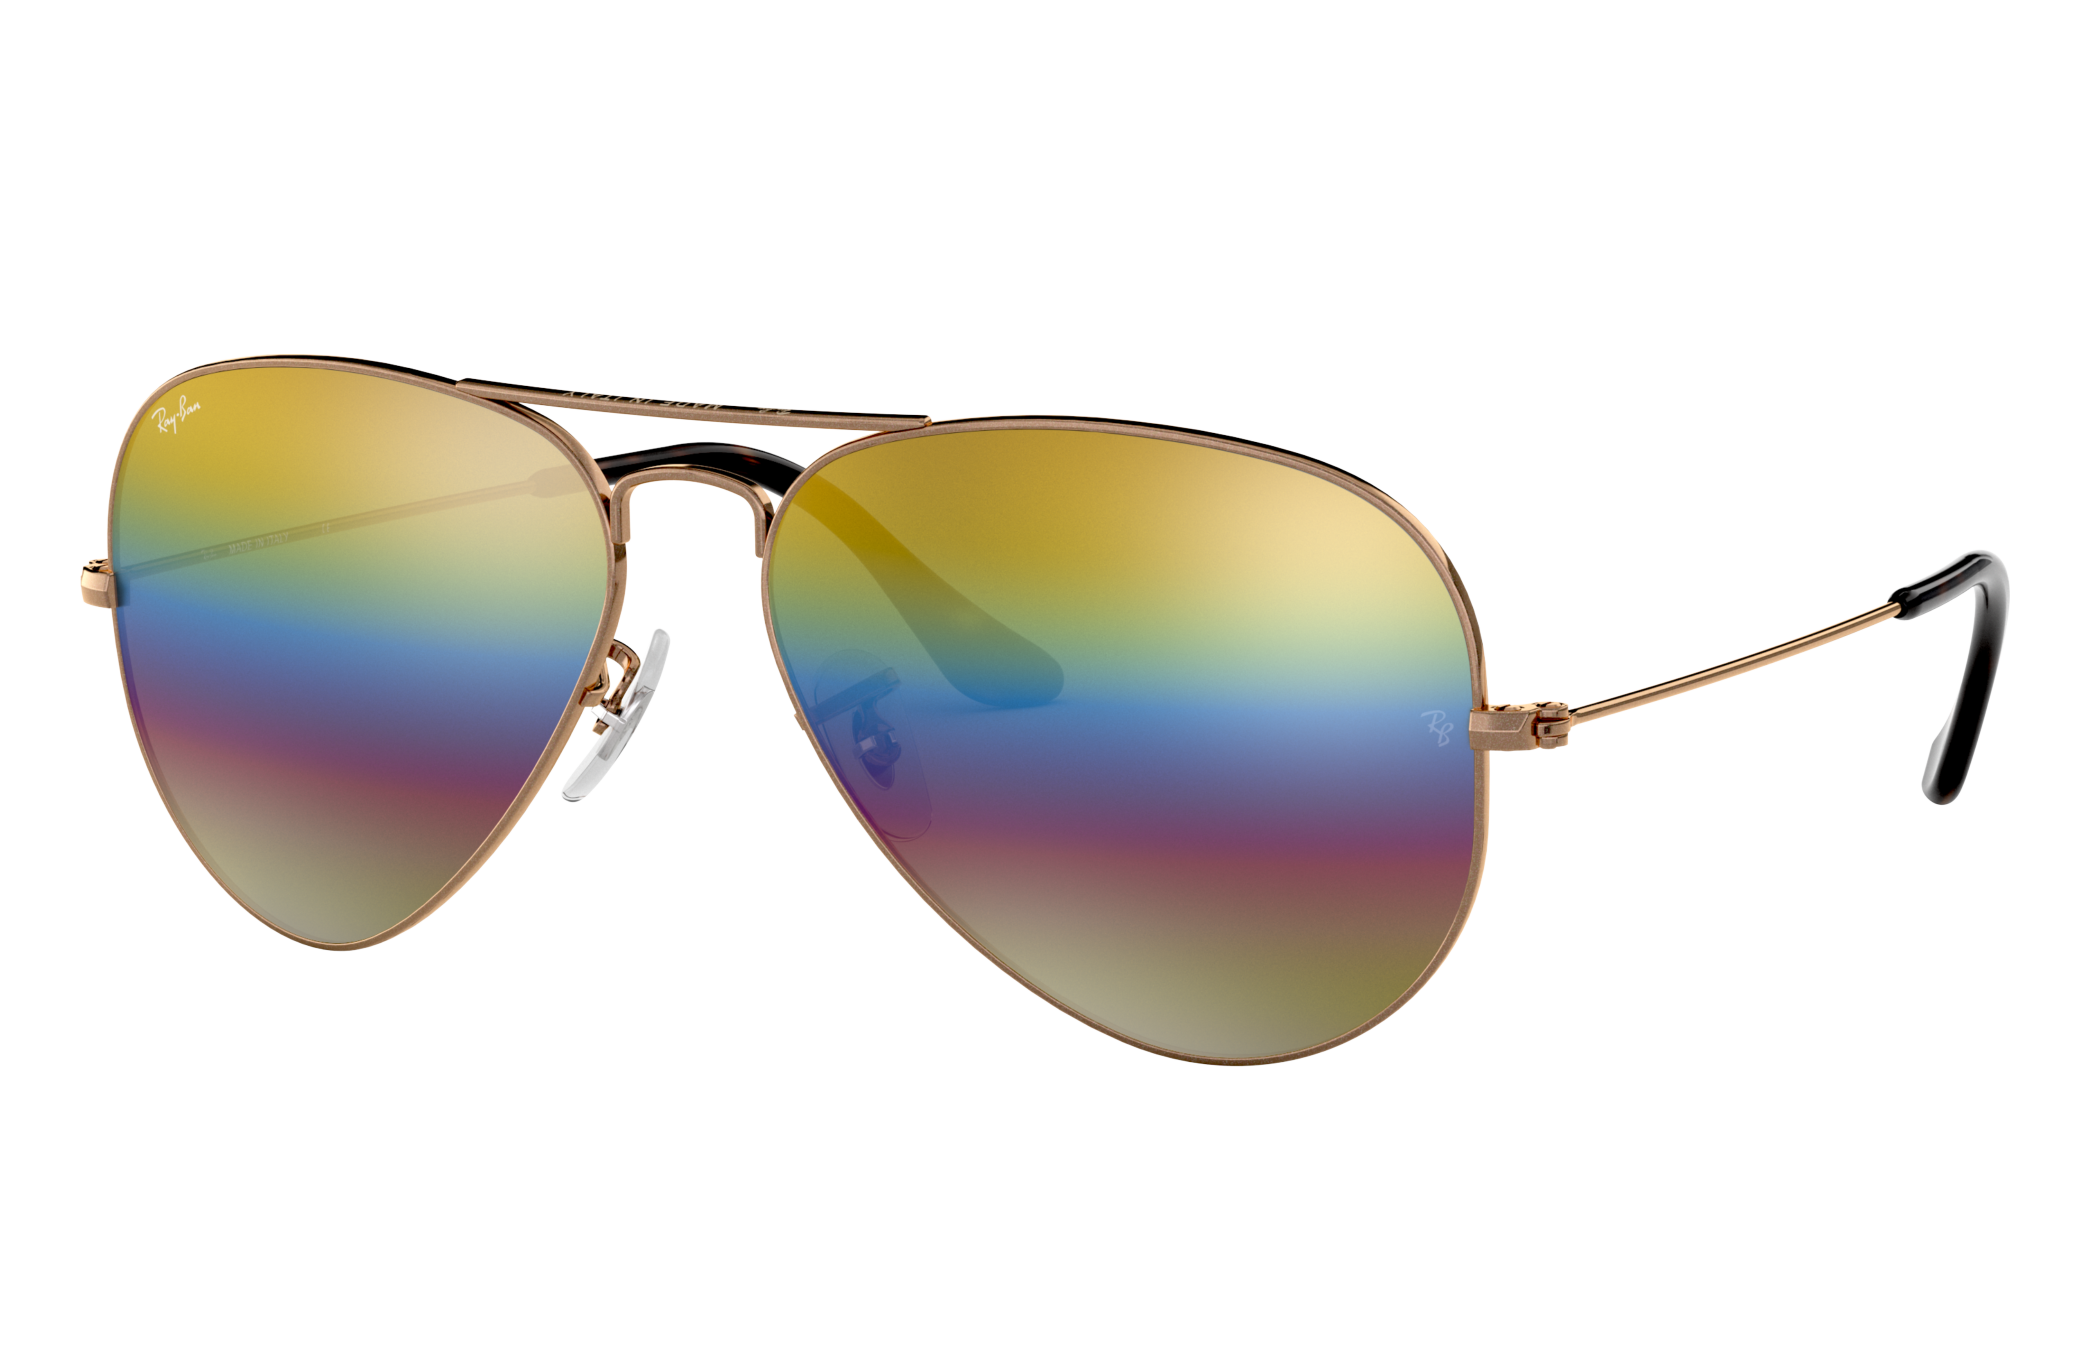 Ray-Ban Aviator Mineral Flash Lenses Bronze-Copper, Yellow Lenses - RB3025